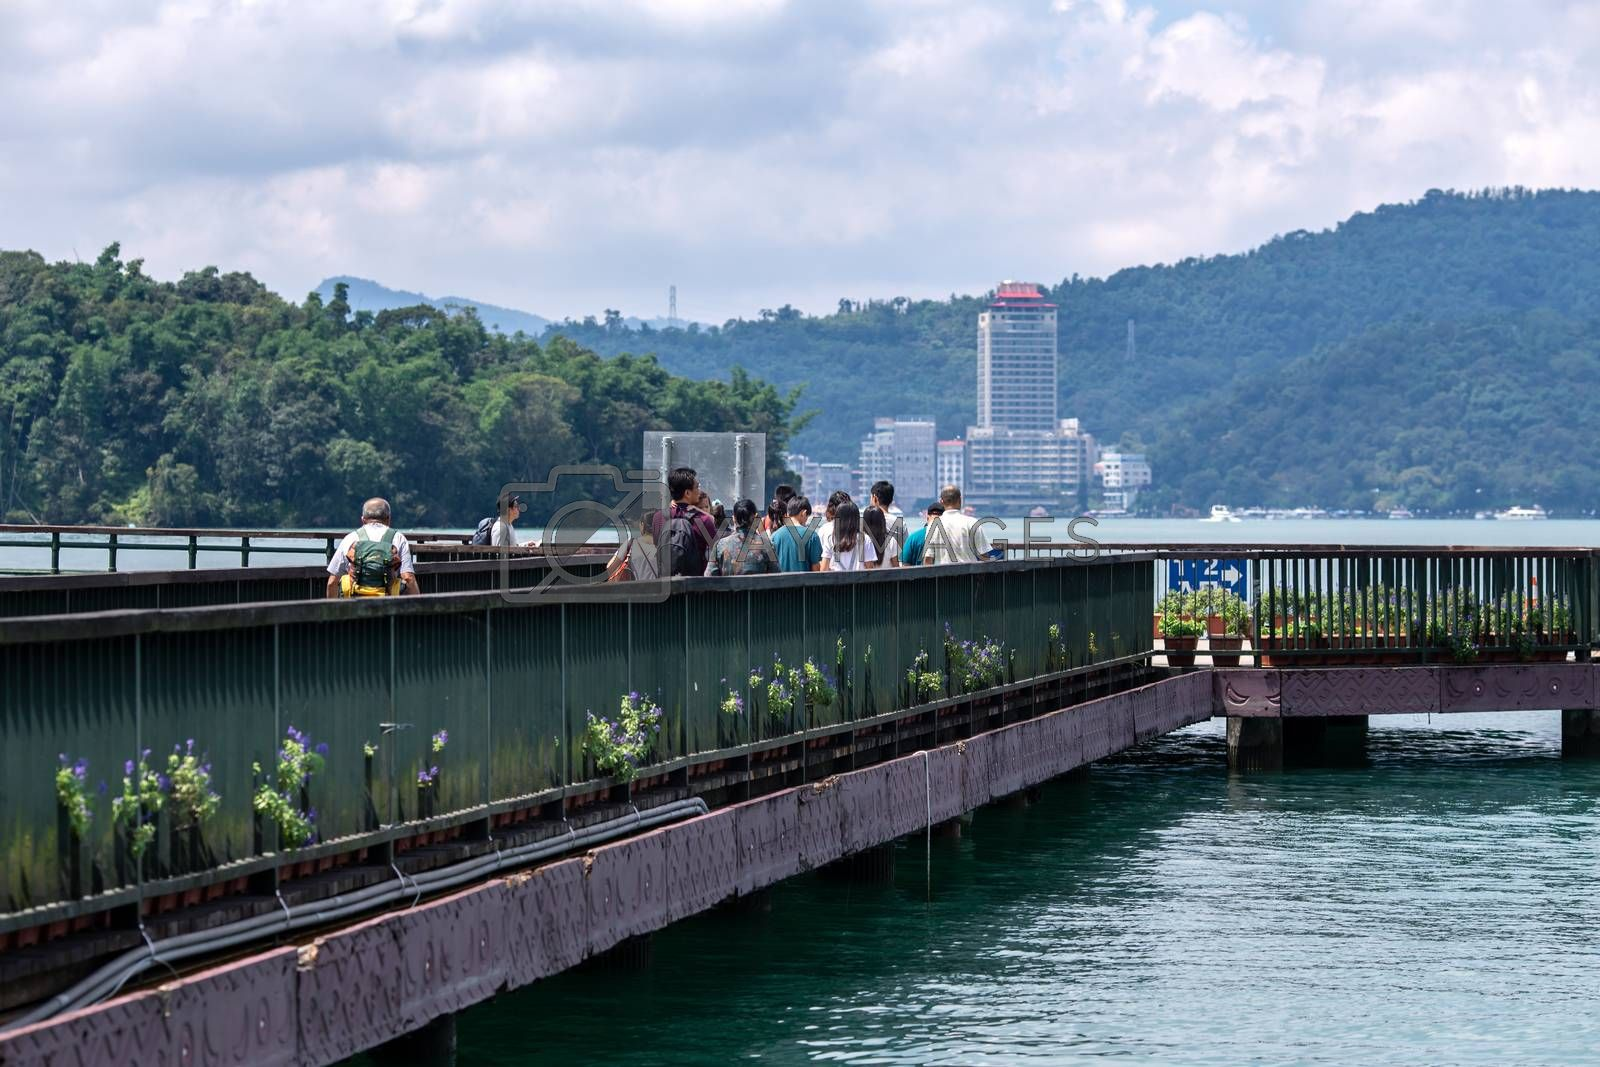 Tourists walk on pier for Hop-On Hop-Off Boat at Sun Moon Lake, the largest lake in Taiwan and tourist attraction. There are 3 main piers at Sun Moon Lake.